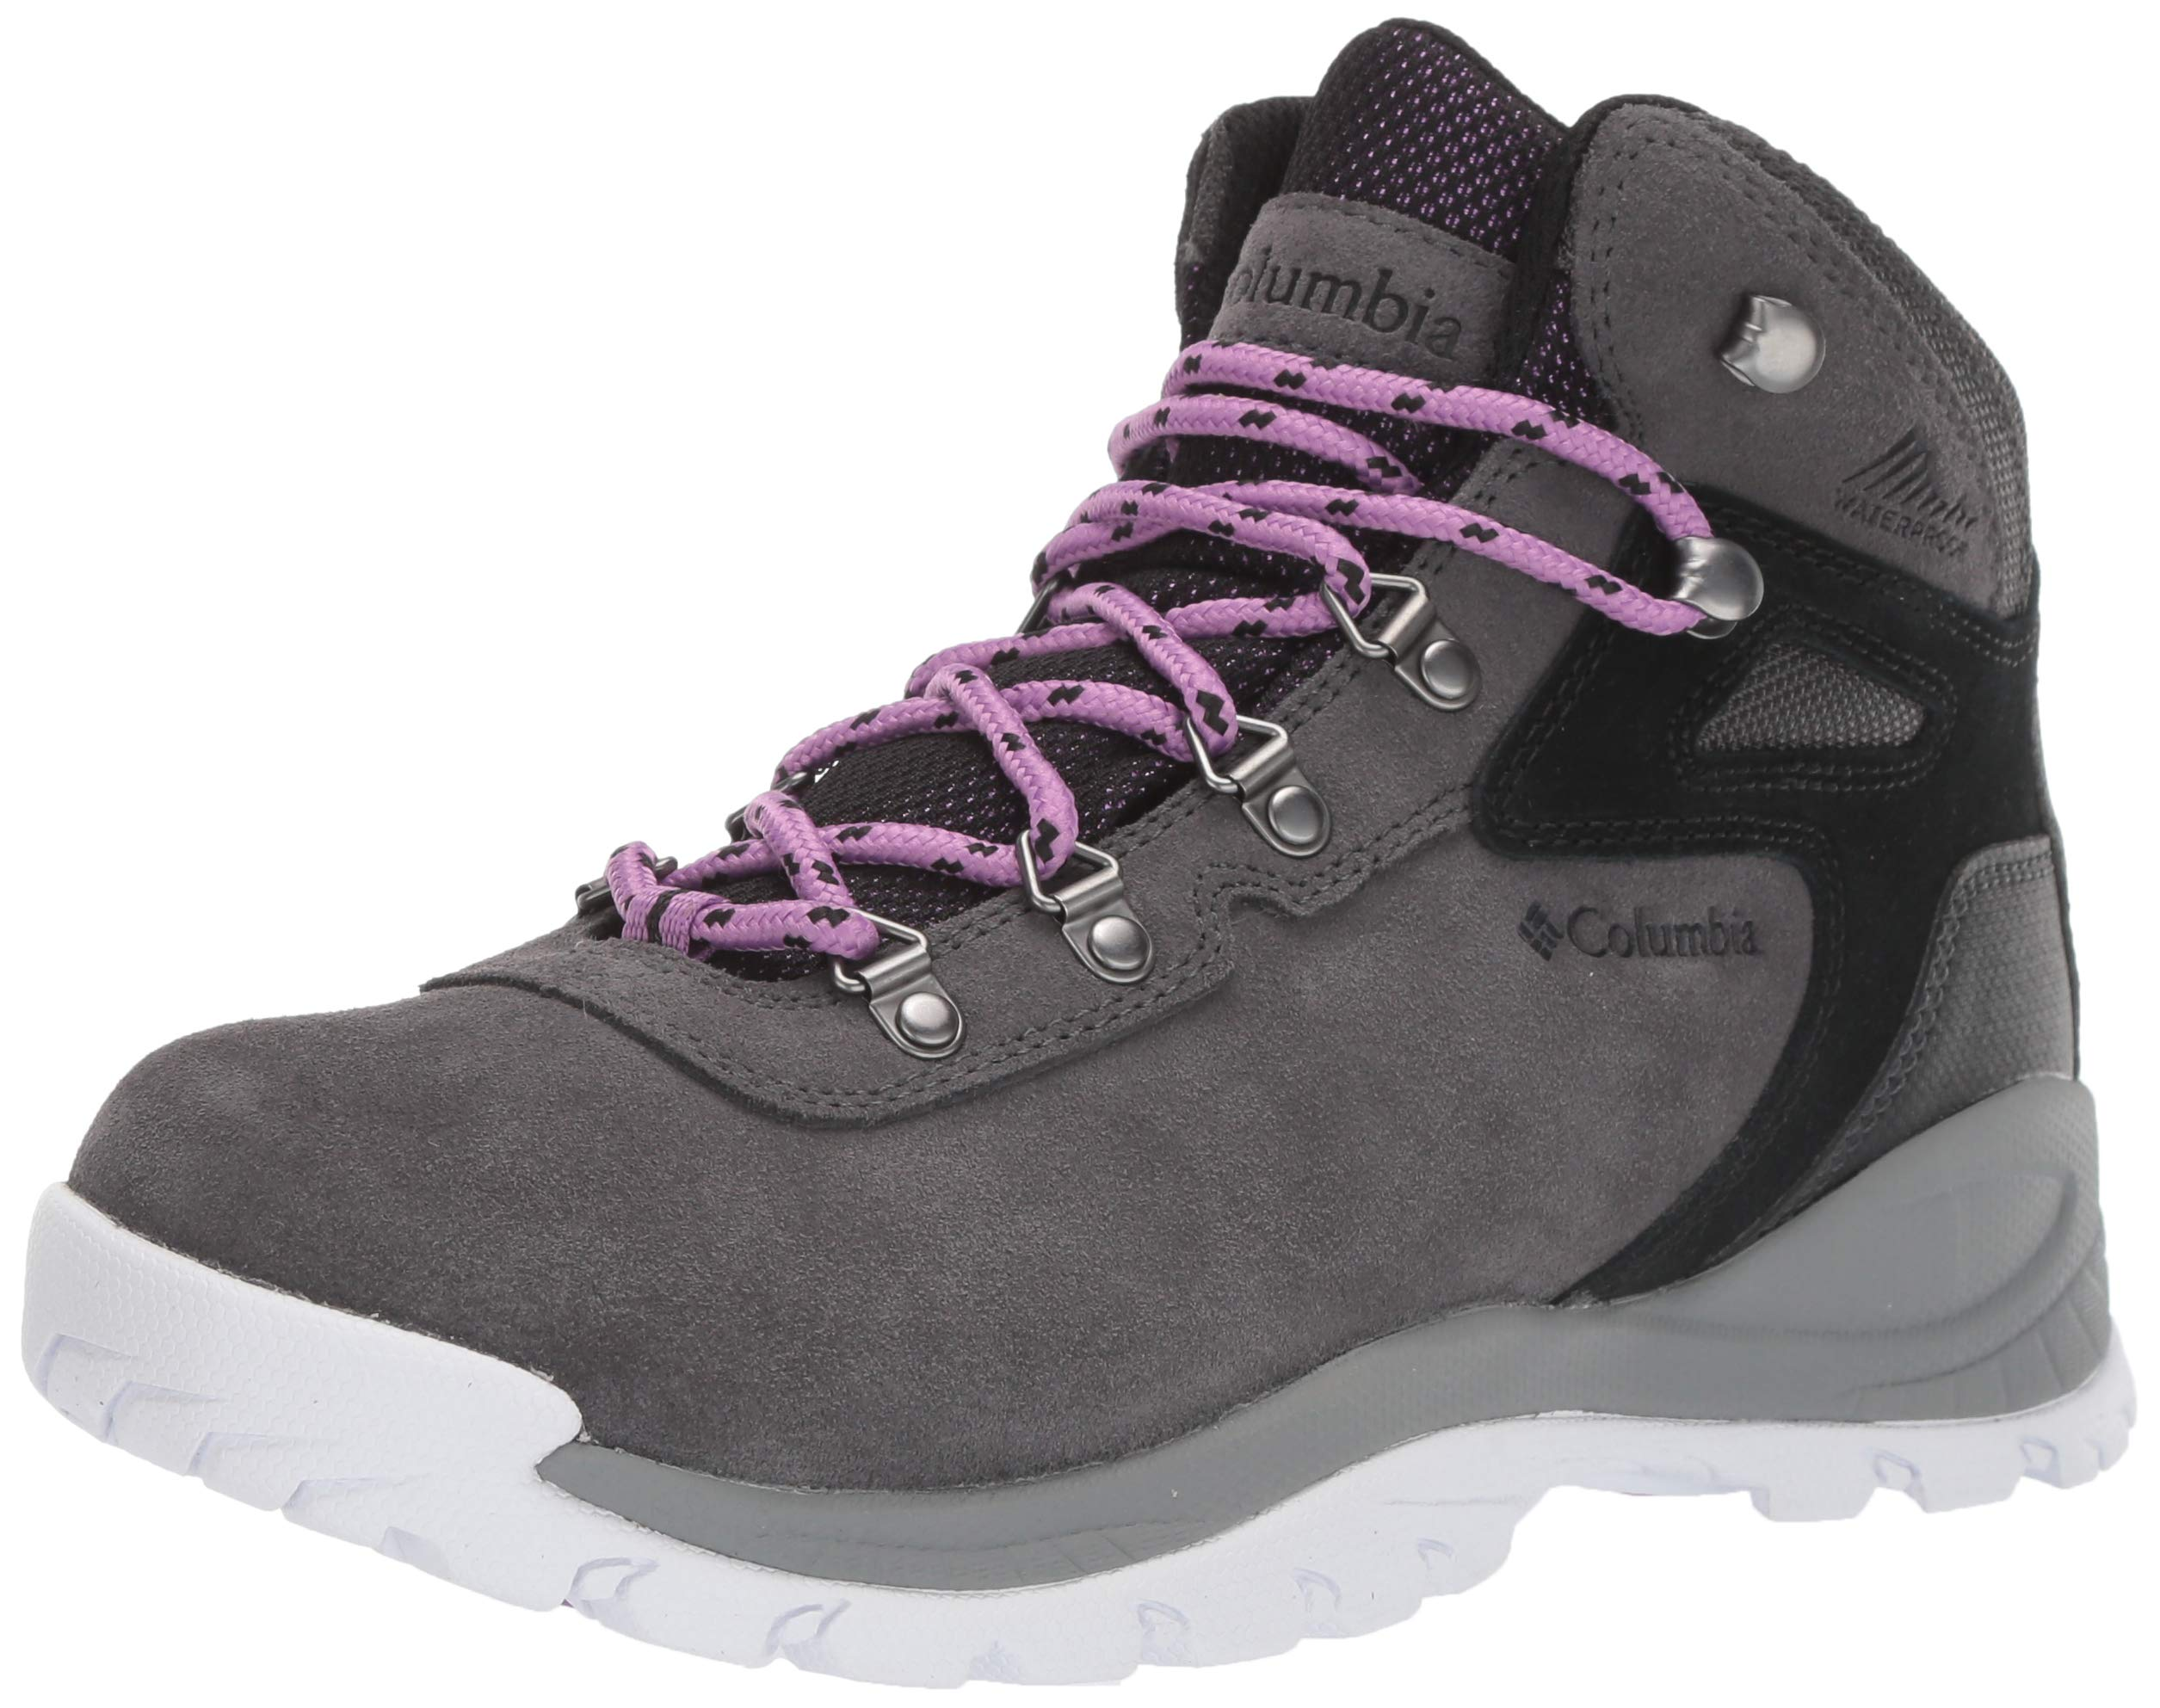 Columbia Women's Newton Ridge Plus Waterproof Amped Hiking Shoe, Dark Grey, Crown Jewel, 6.5 Regular US by Columbia